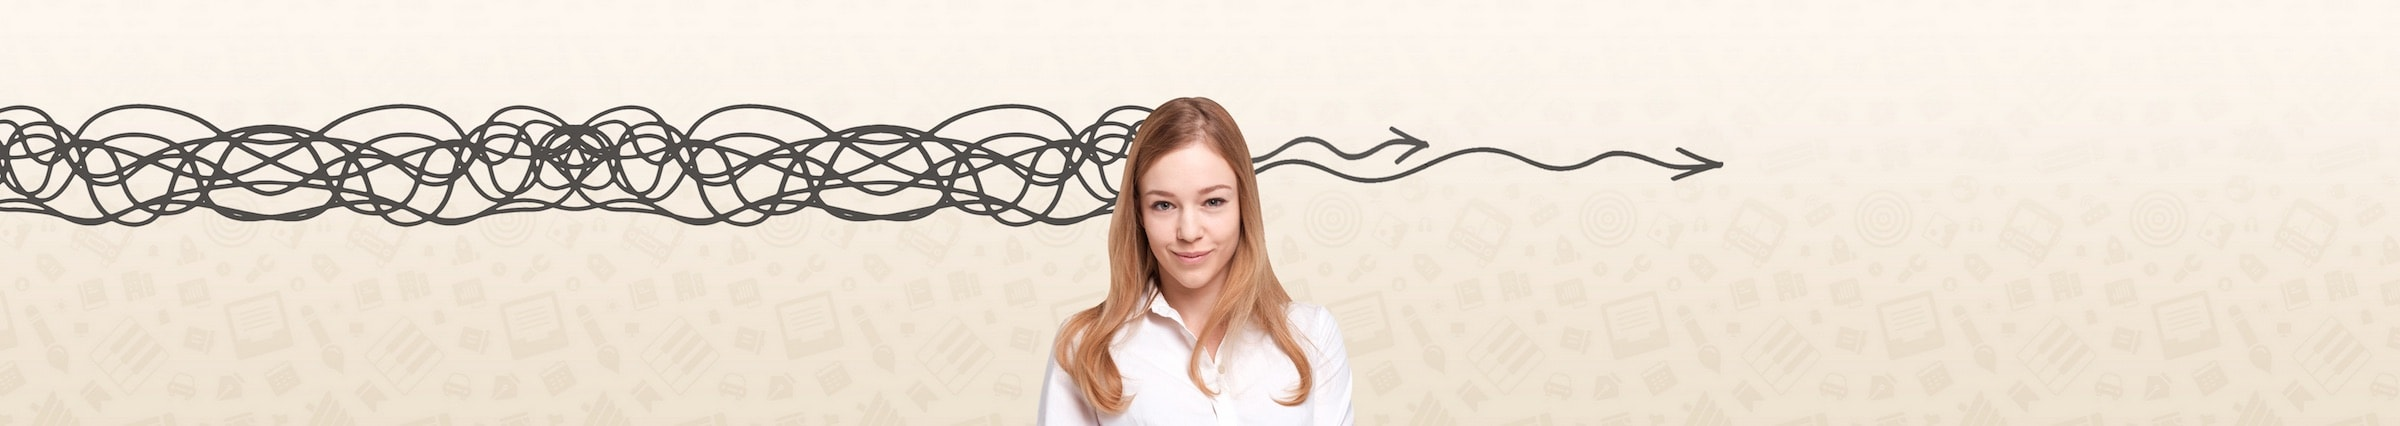 woman with long read hair standing in front of graphic background with the appearance of a squiggly line entering the left of his head and two gently wavy arrows emerging from the right hand side